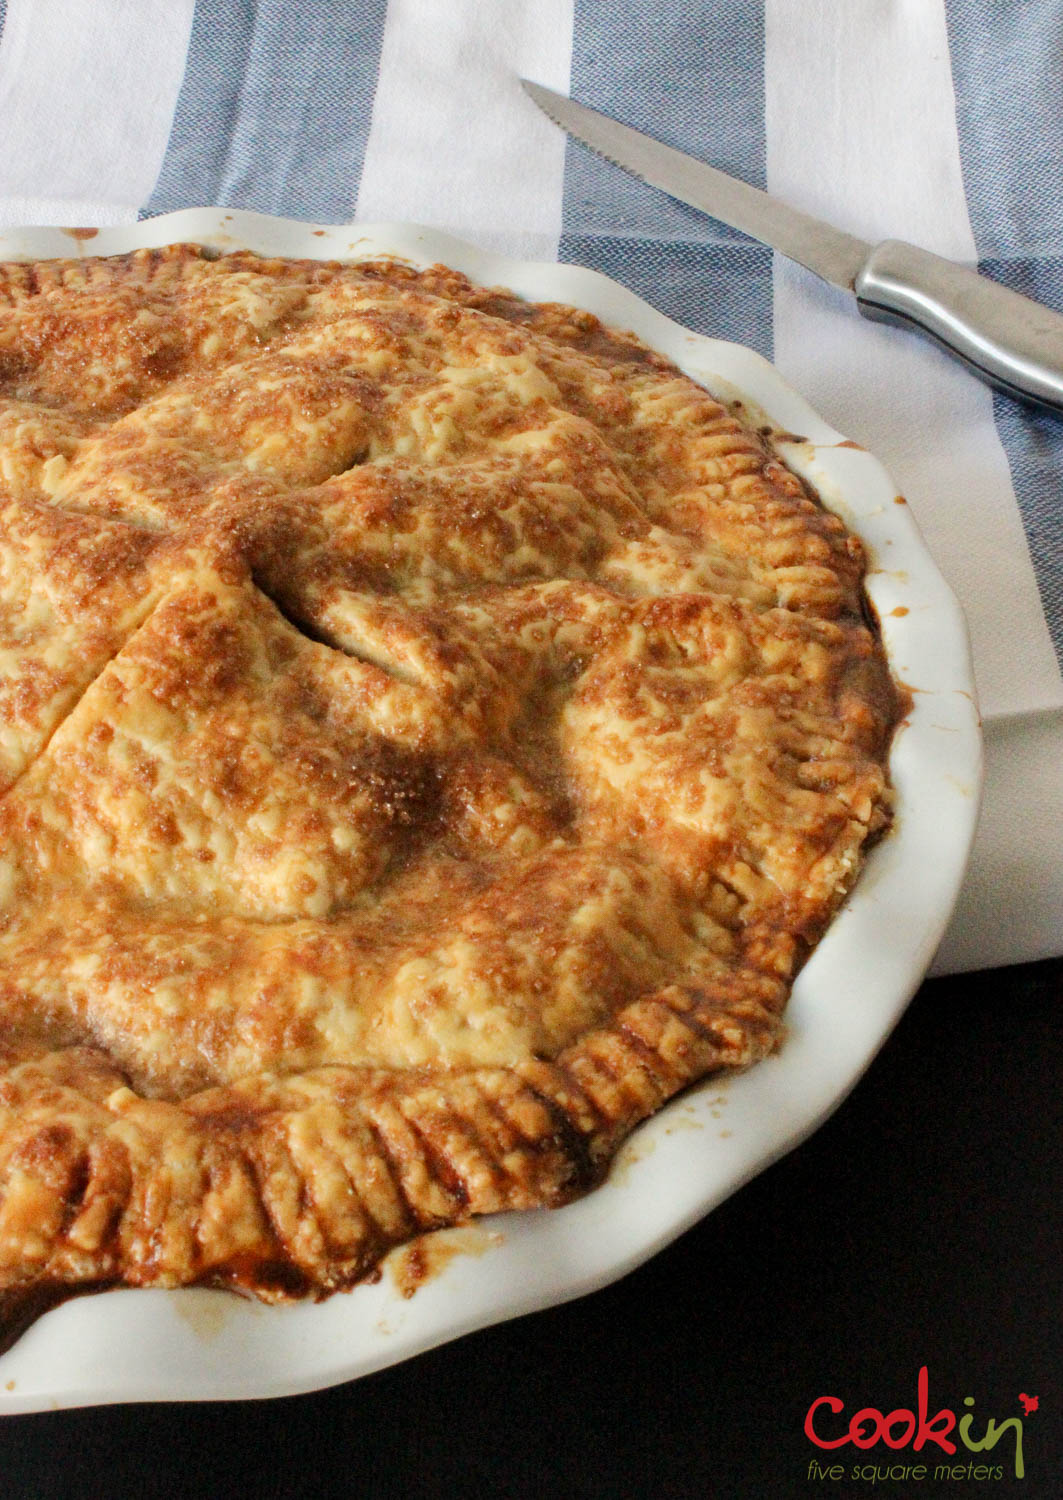 Classic apple pie a new member cook in five square meters - Apple pie recipes ...